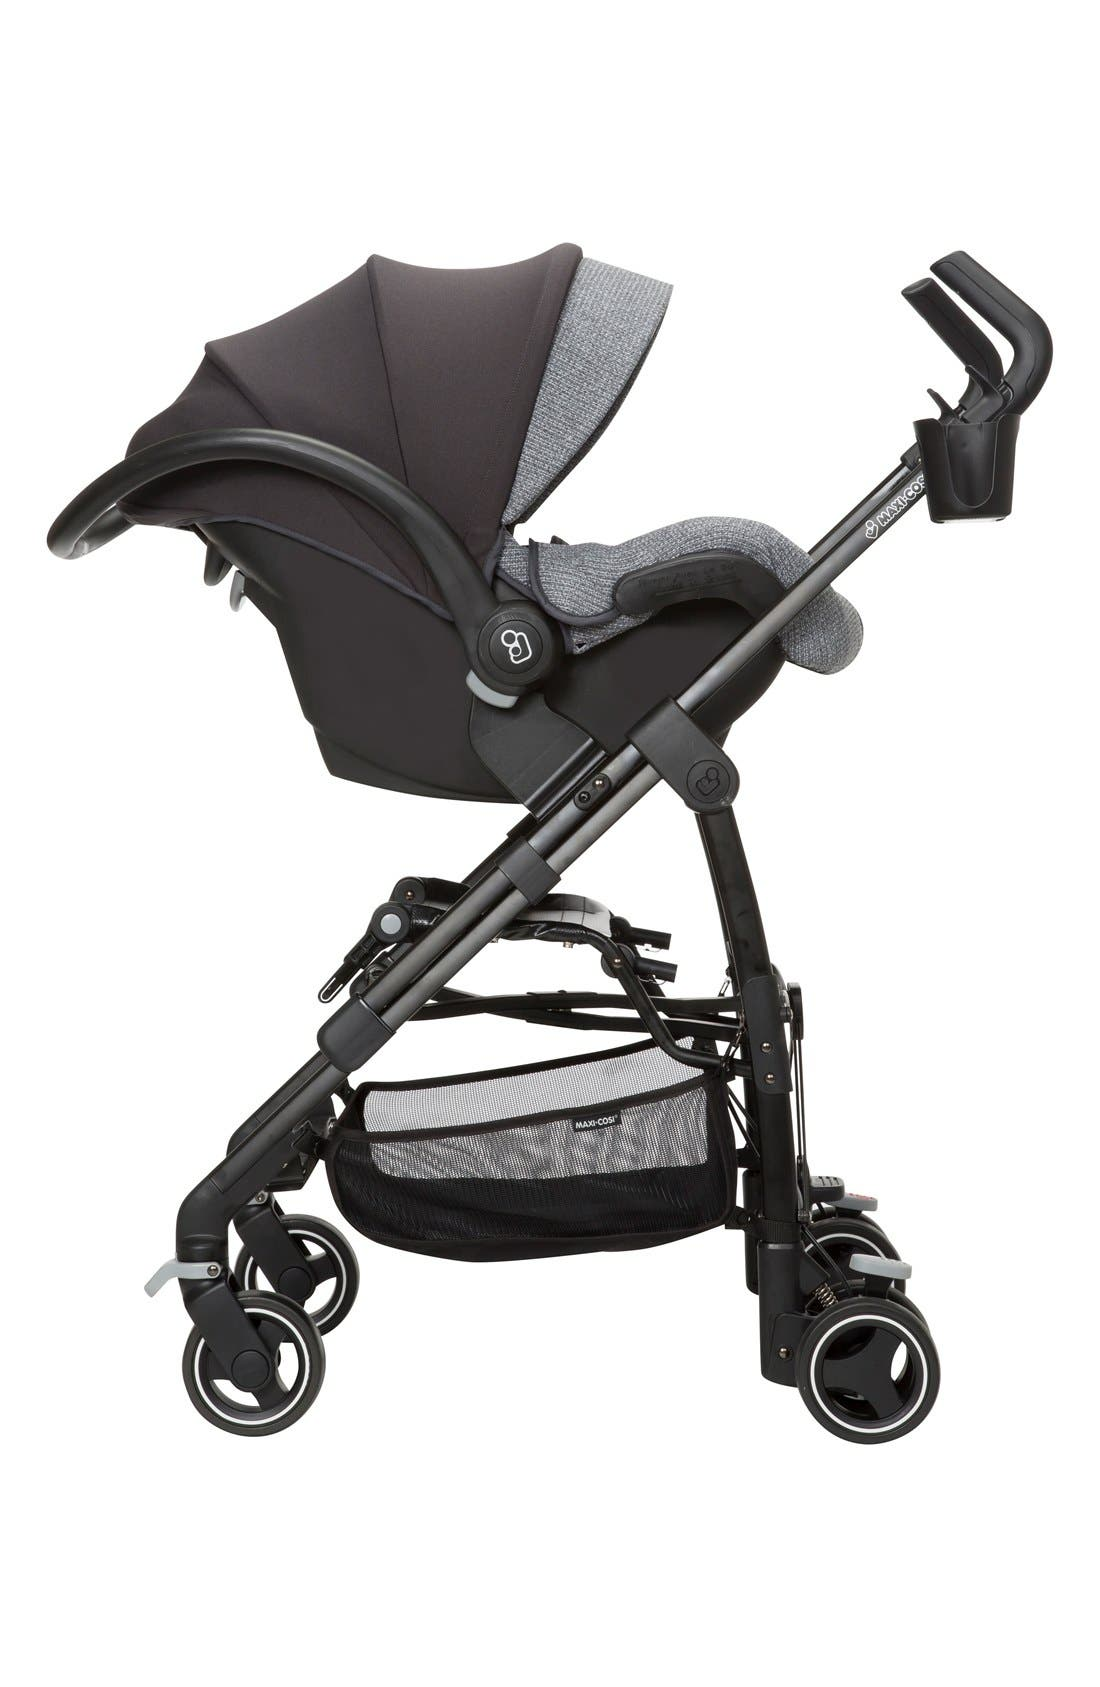 Dana Sweater Knit Special Edition Stroller,                             Alternate thumbnail 10, color,                             024